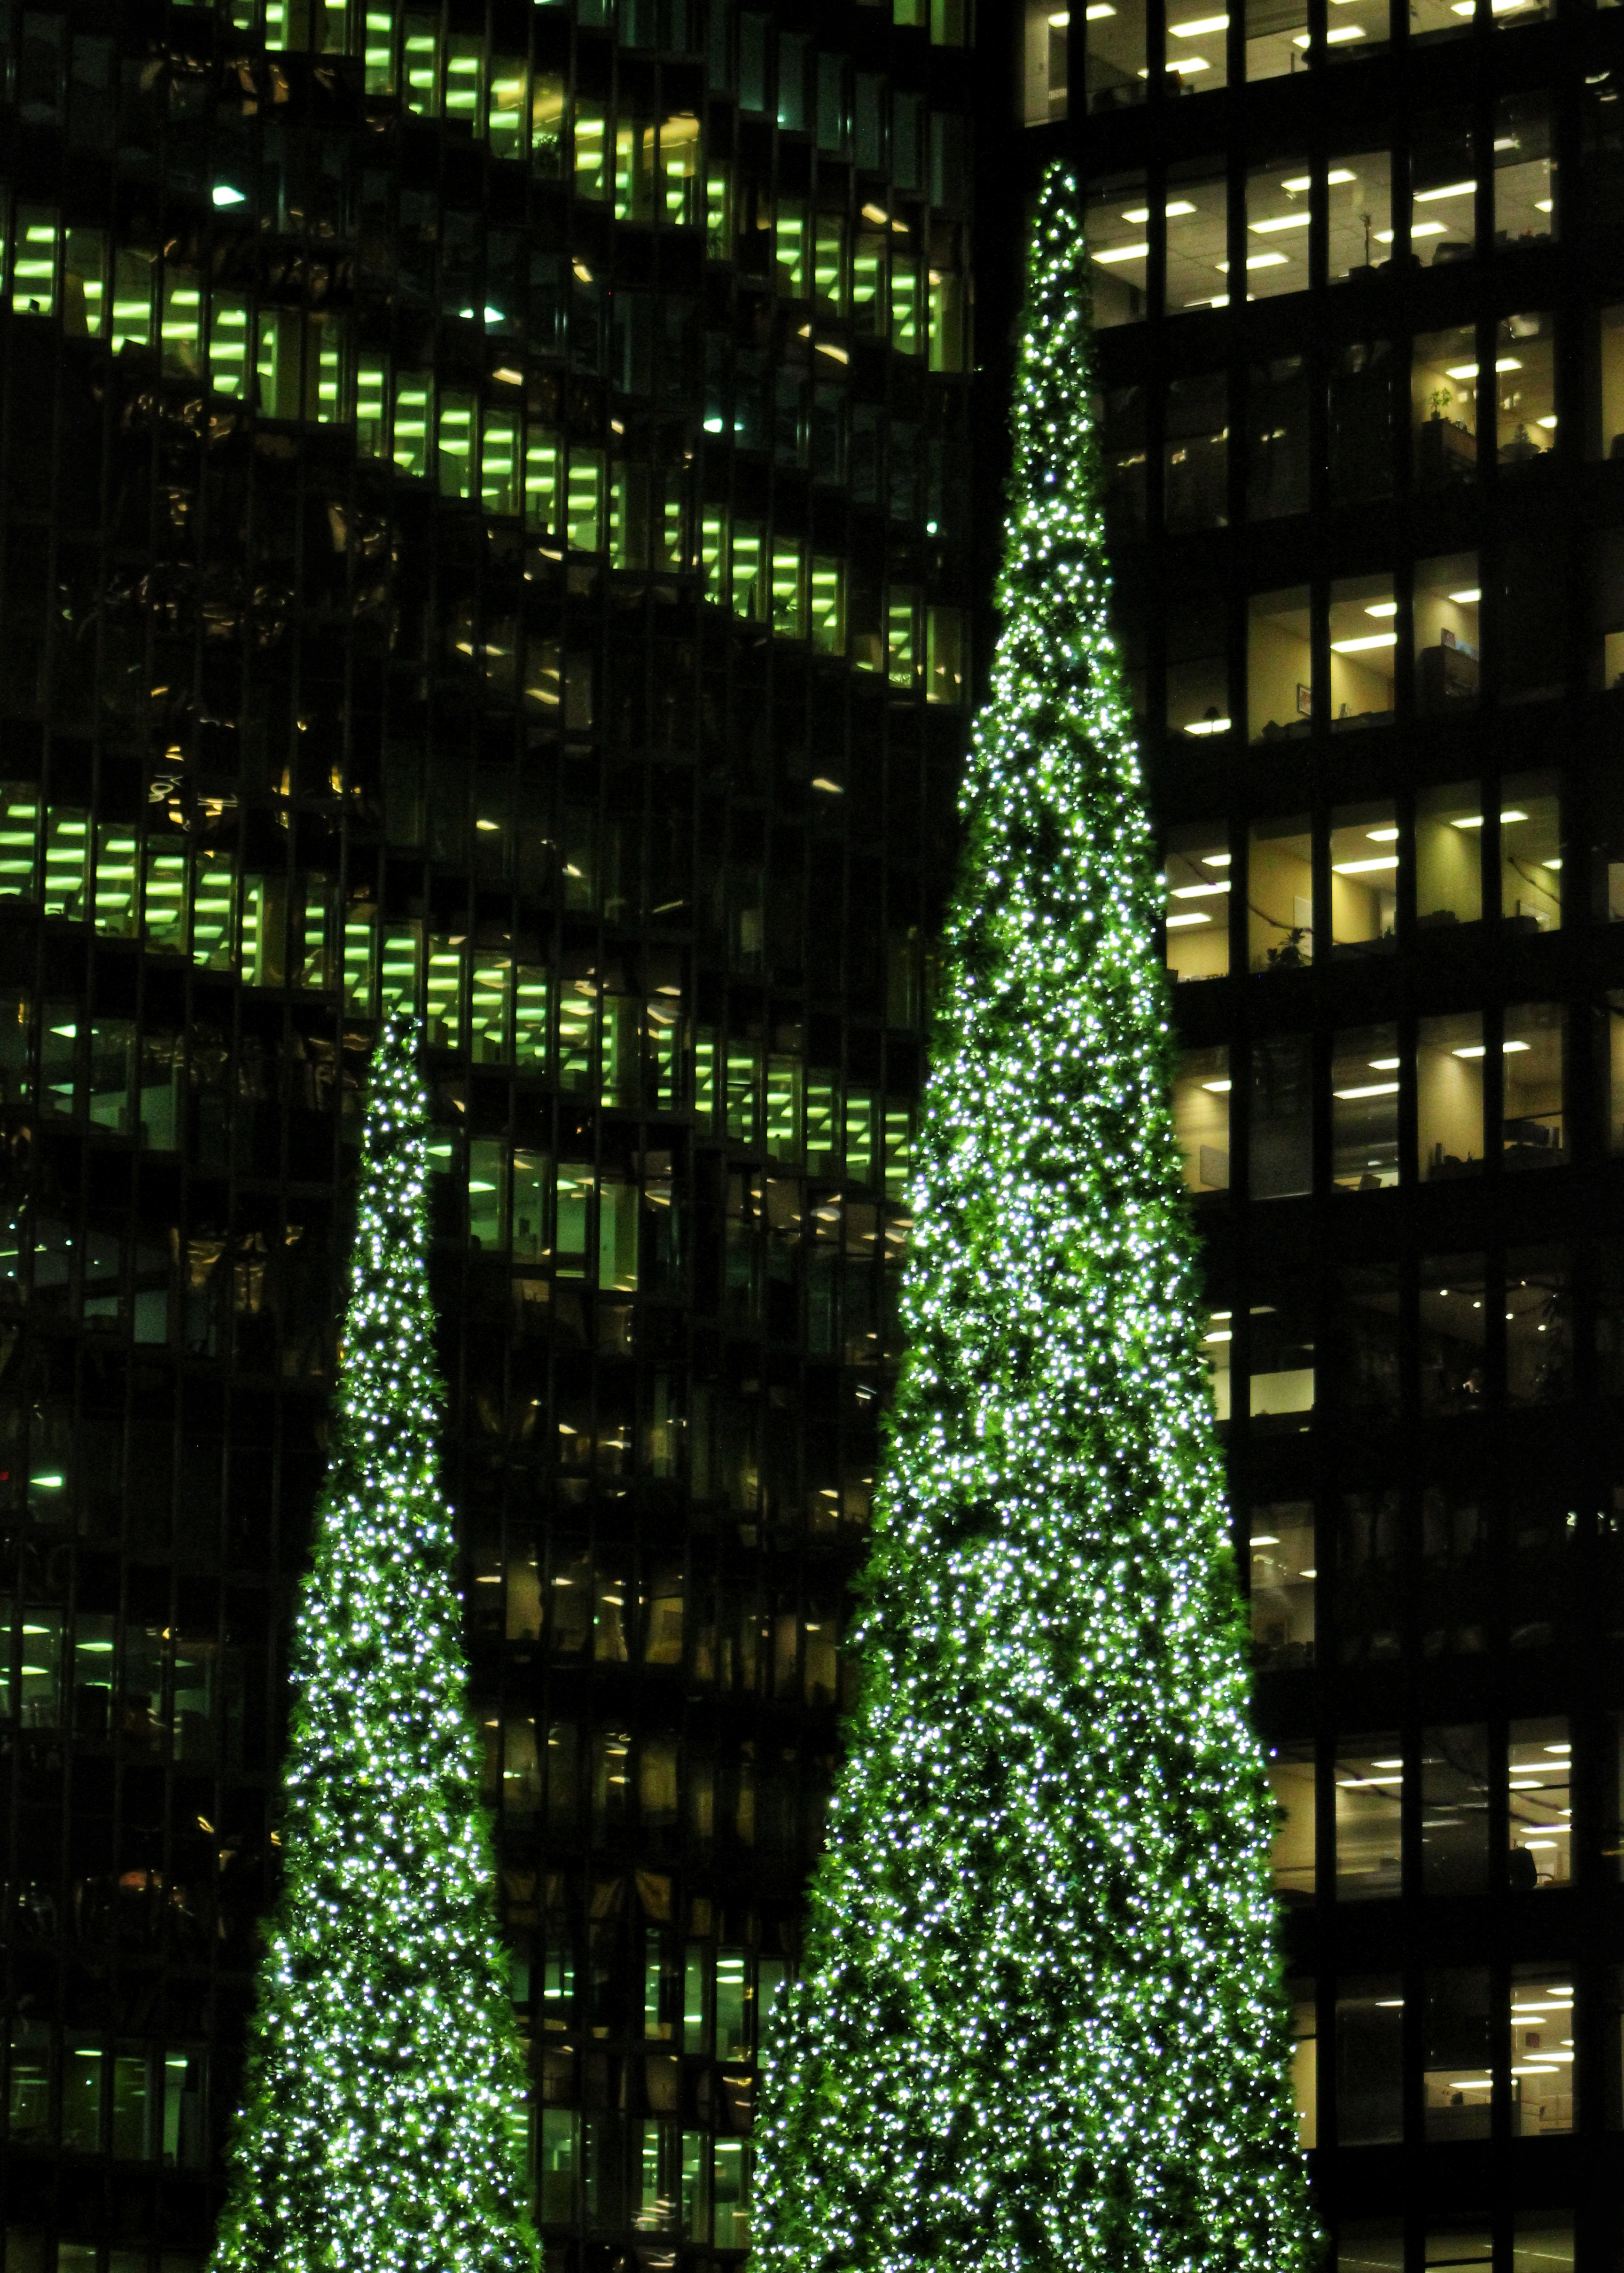 Green Christmas Trees Dwarfed by Buildings, Building, Christmas, Dawn, Downtown, HQ Photo